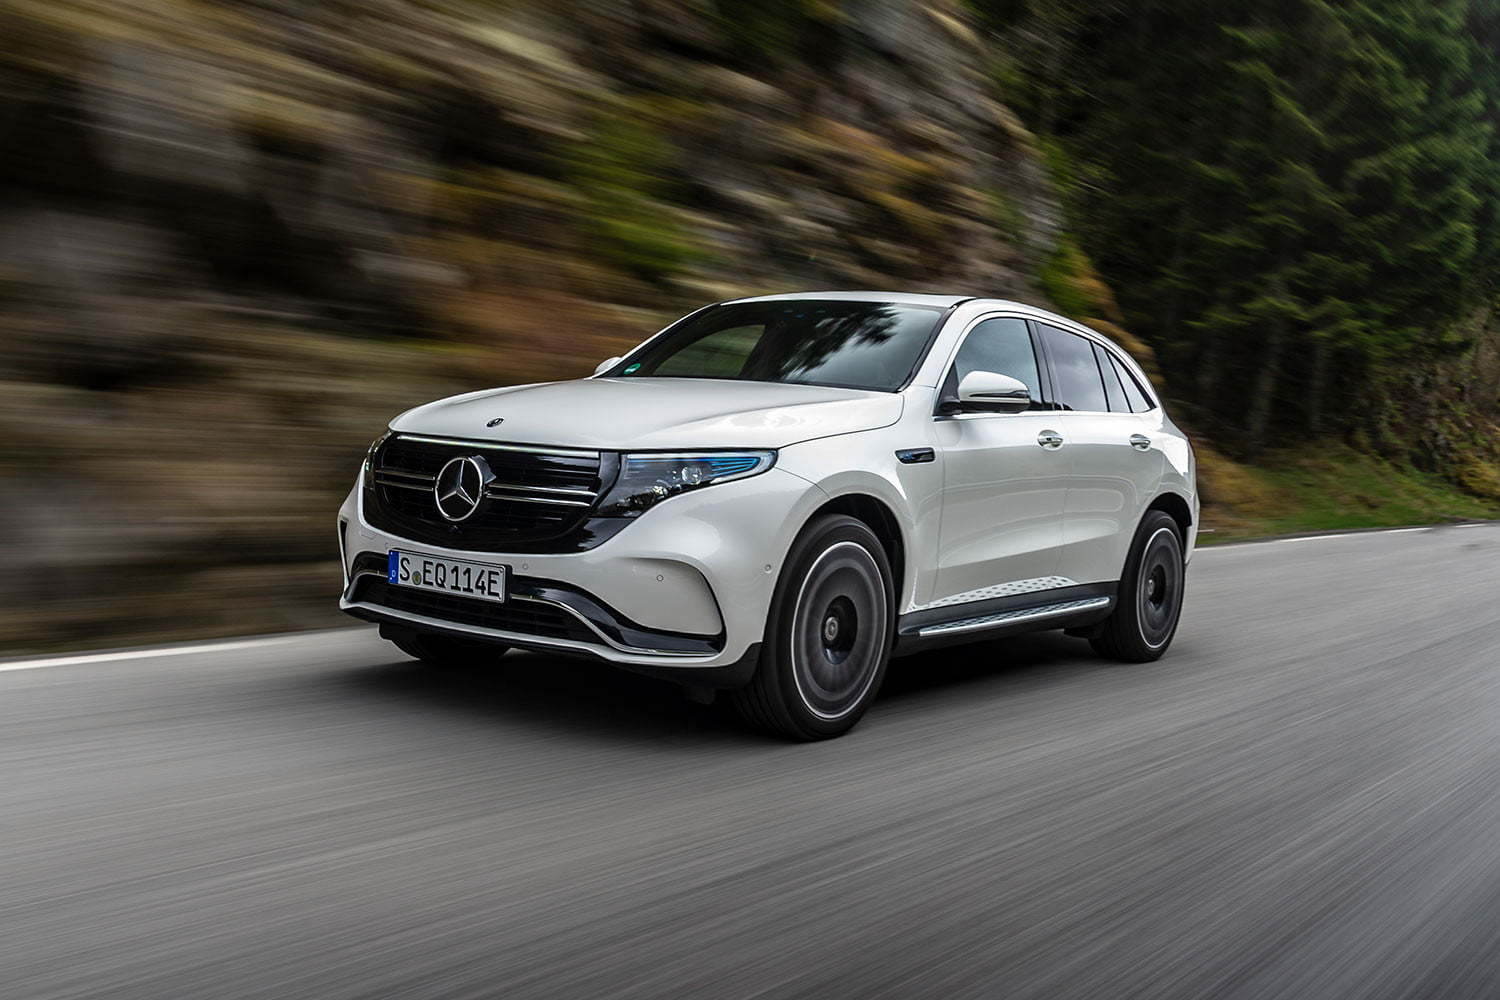 2020-mercedes-benz-eqc-review-22